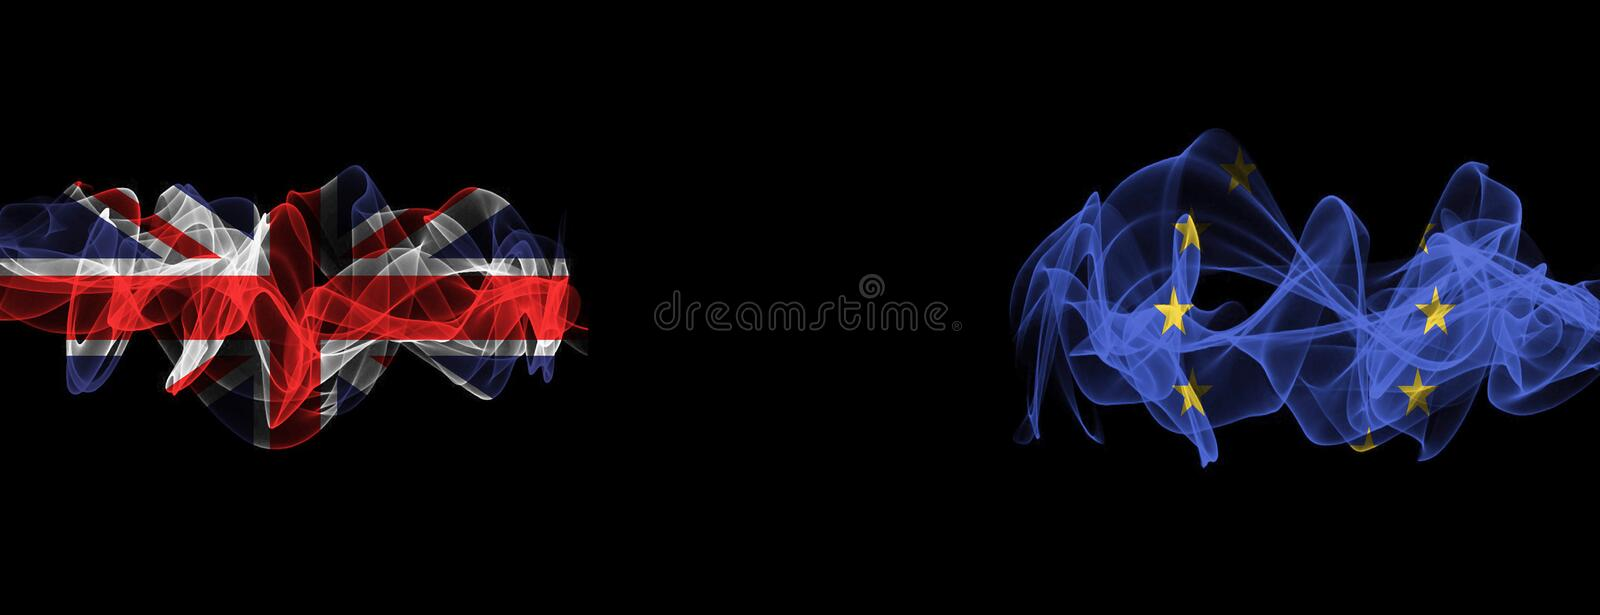 Flags of Union Jack and EU on Black background, Union Jack vs Europe Union Smoke Flags. Flags on Black background royalty free stock image